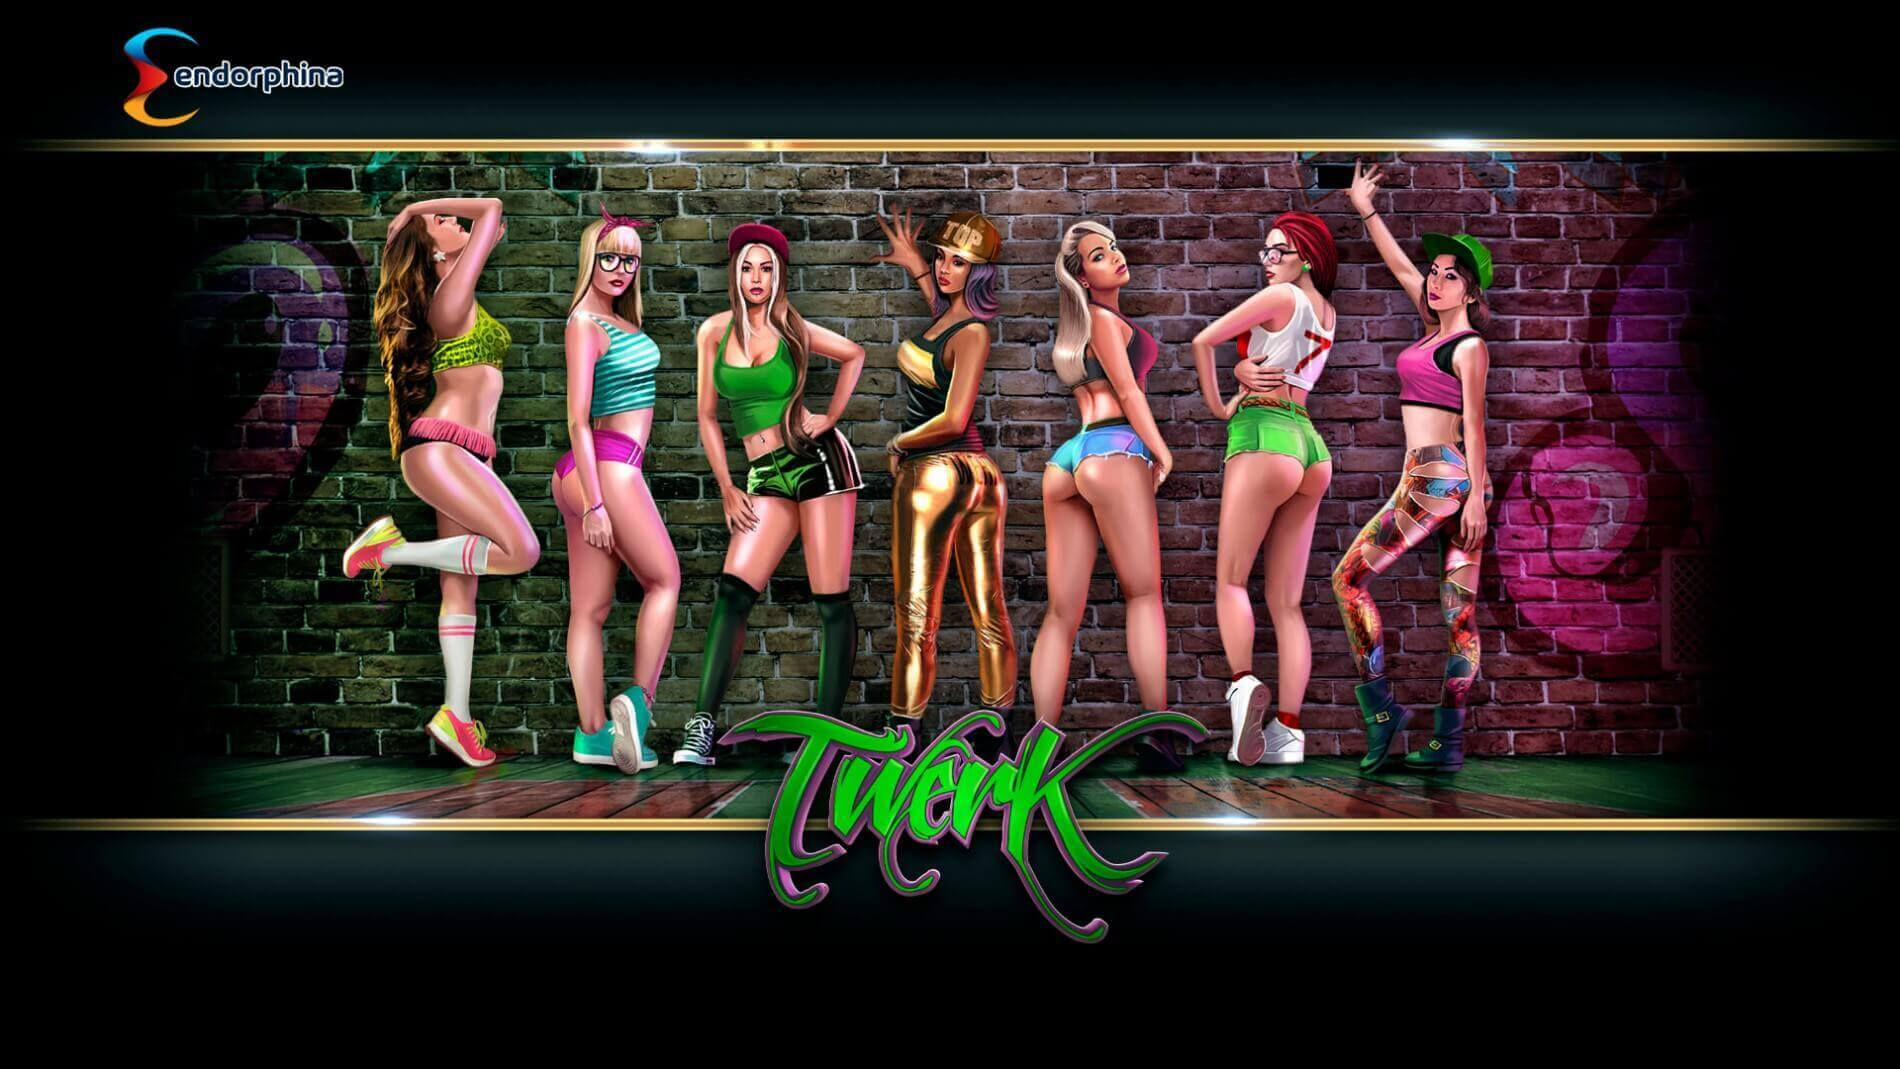 Twerk play demo slot